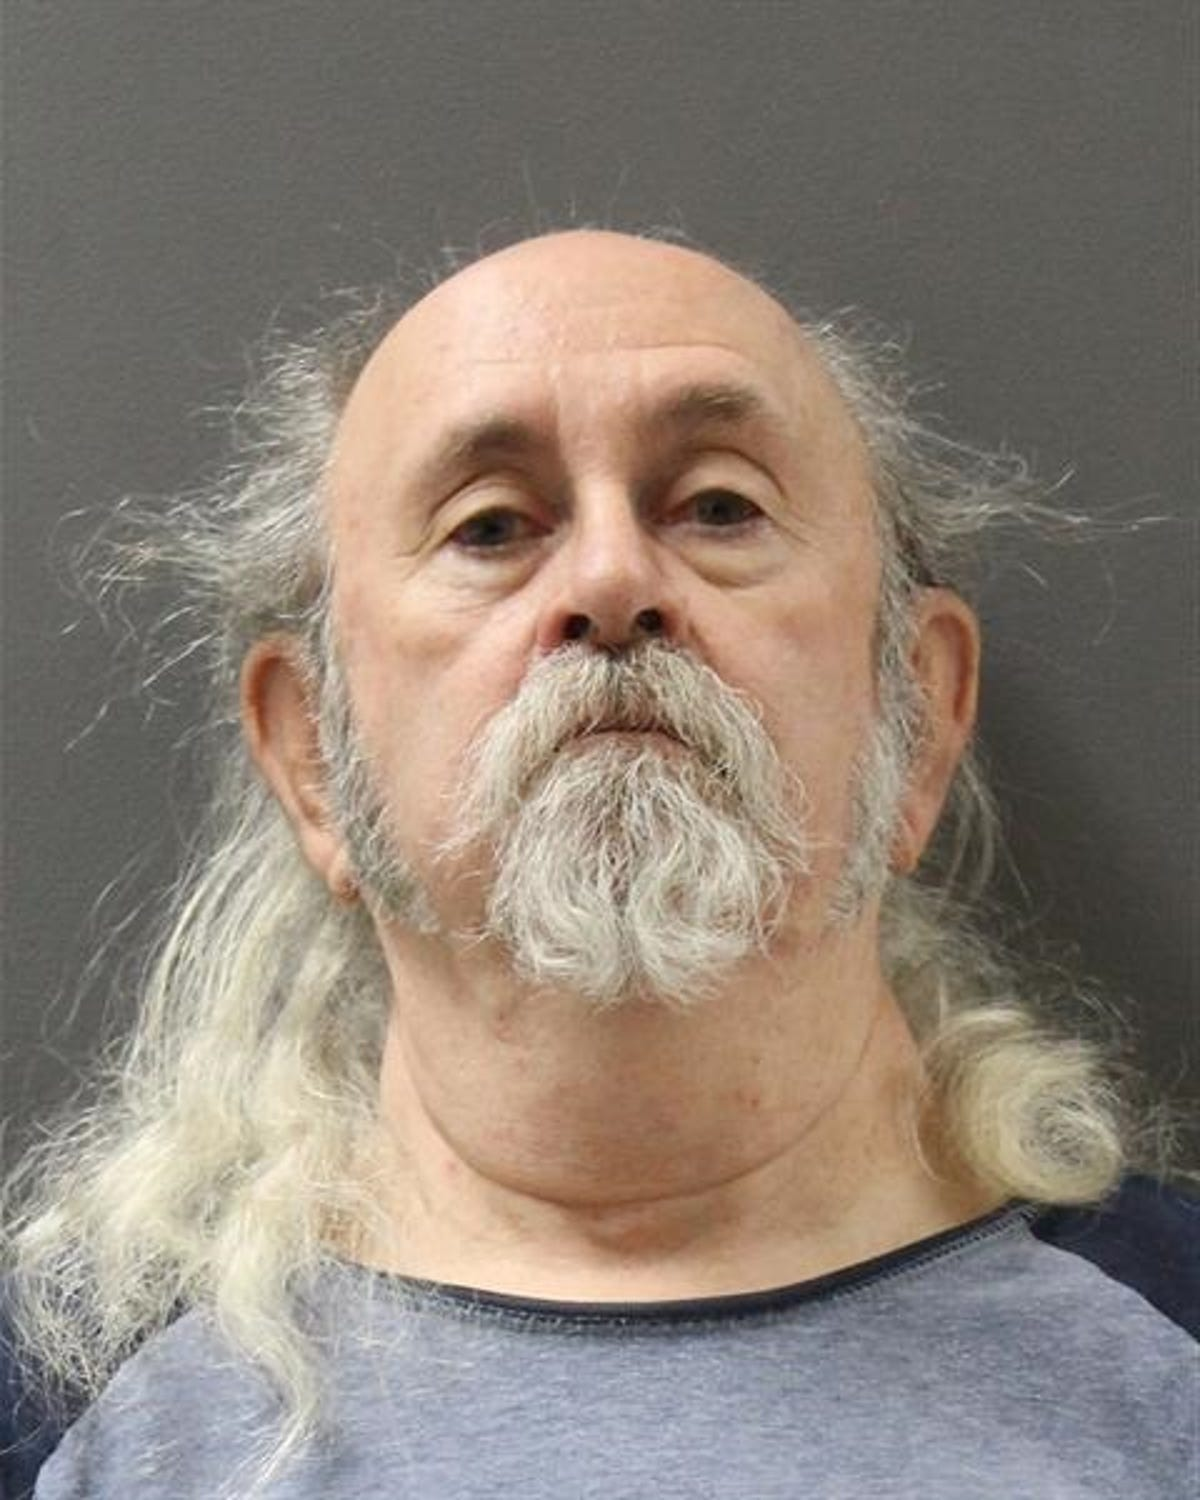 Iowa fugitive on run for 37 years arrested in Prescott Valley